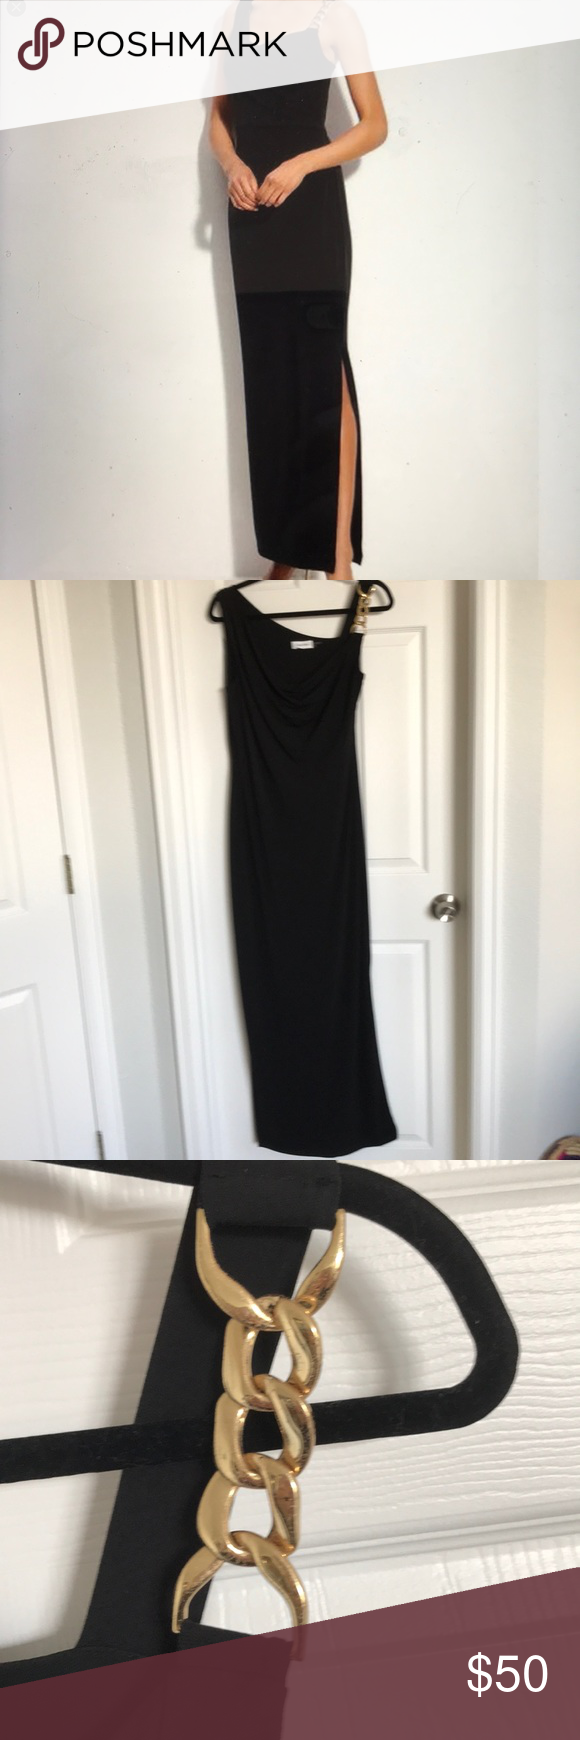 Long Cocktail Dress With Gold Chain Strap Long Cocktail Dress Clothes Design Cocktail Dress [ 1740 x 580 Pixel ]